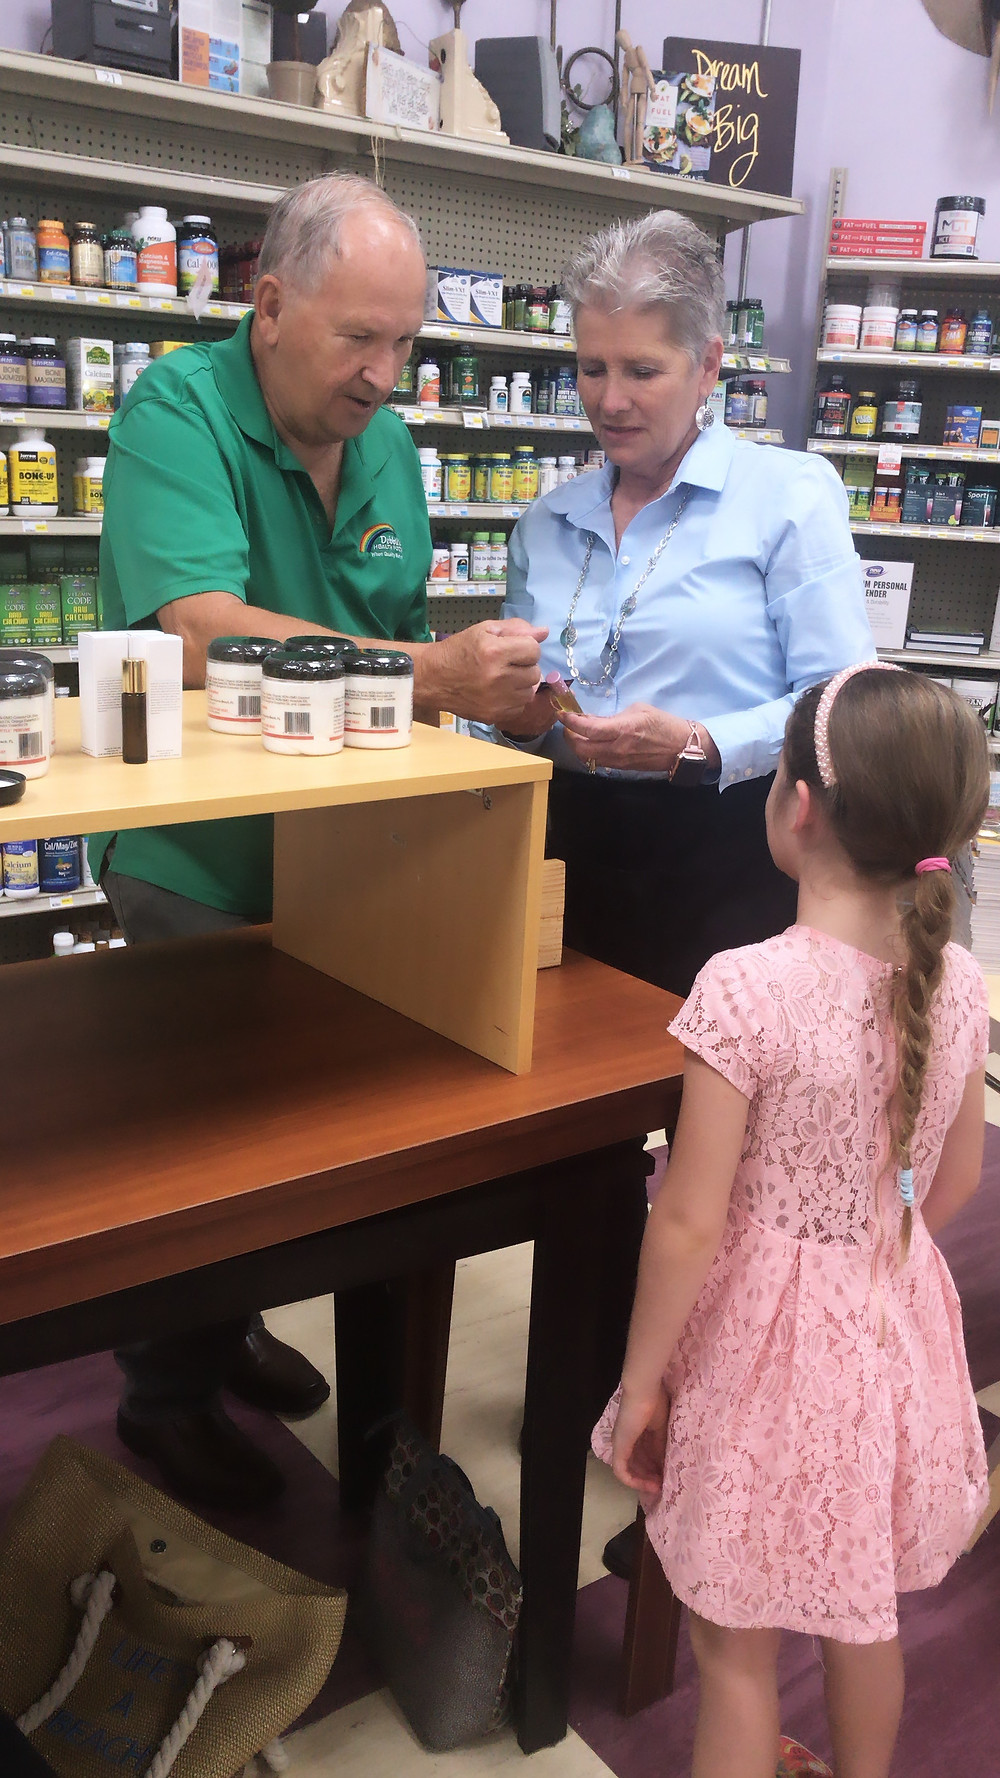 Debbie and Leon, Owners of Both Debbie's Health Foods In Orang City Florida And Port Orange Florida. Trying Out Strawberry Lane Perfume.